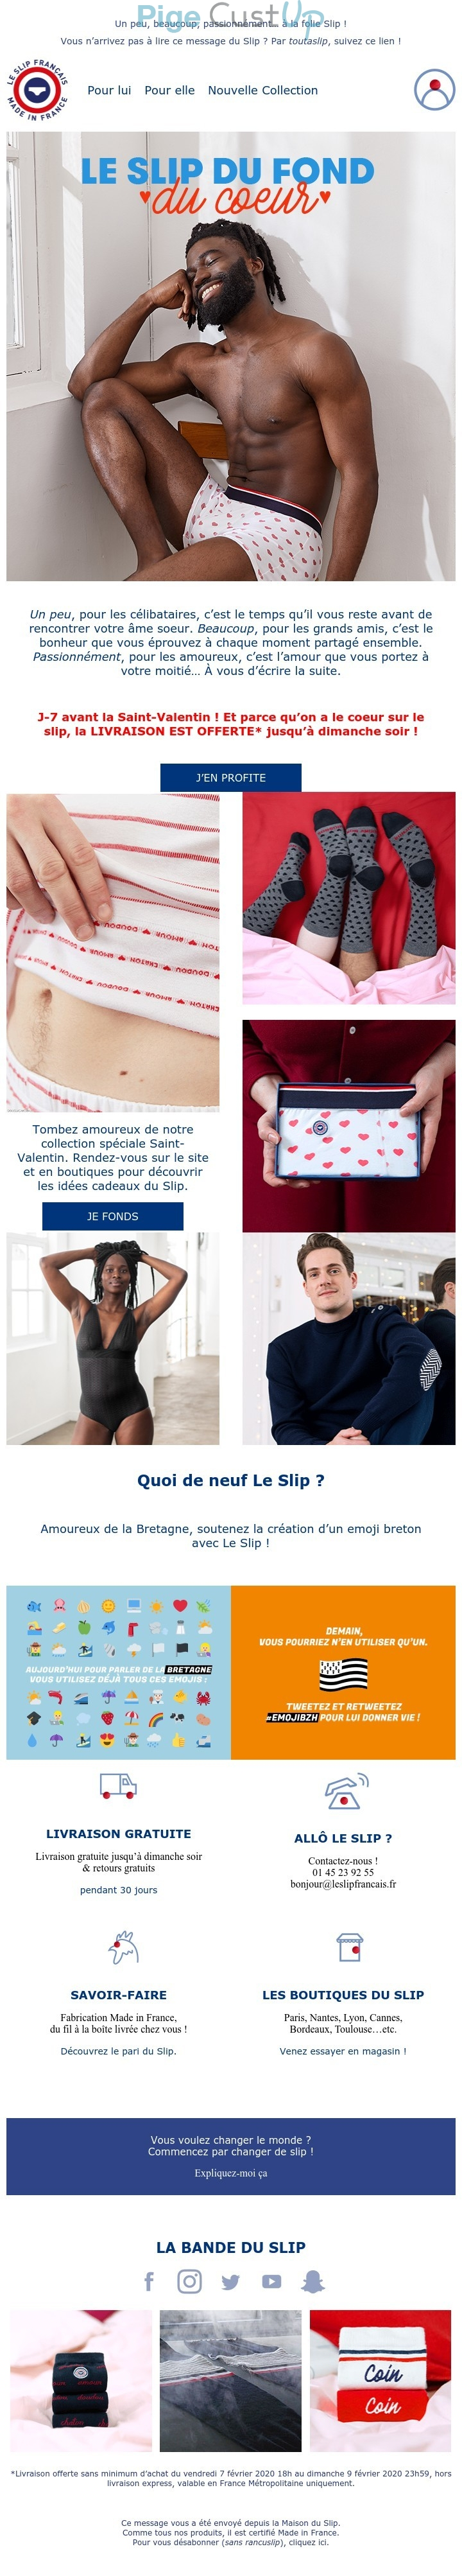 Exemple de Type de media  e-mailing - Le slip français - Marketing relationnel - Calendaire (Noël, St valentin, Vœux, …) - Marketing marque - Communication Produits - Nouveaux produits - Marketing Acquisition - Derniers jours - Ventes flash, soldes, demarque, promo, réduction - Marketing fidélisation - Incitation au réachat